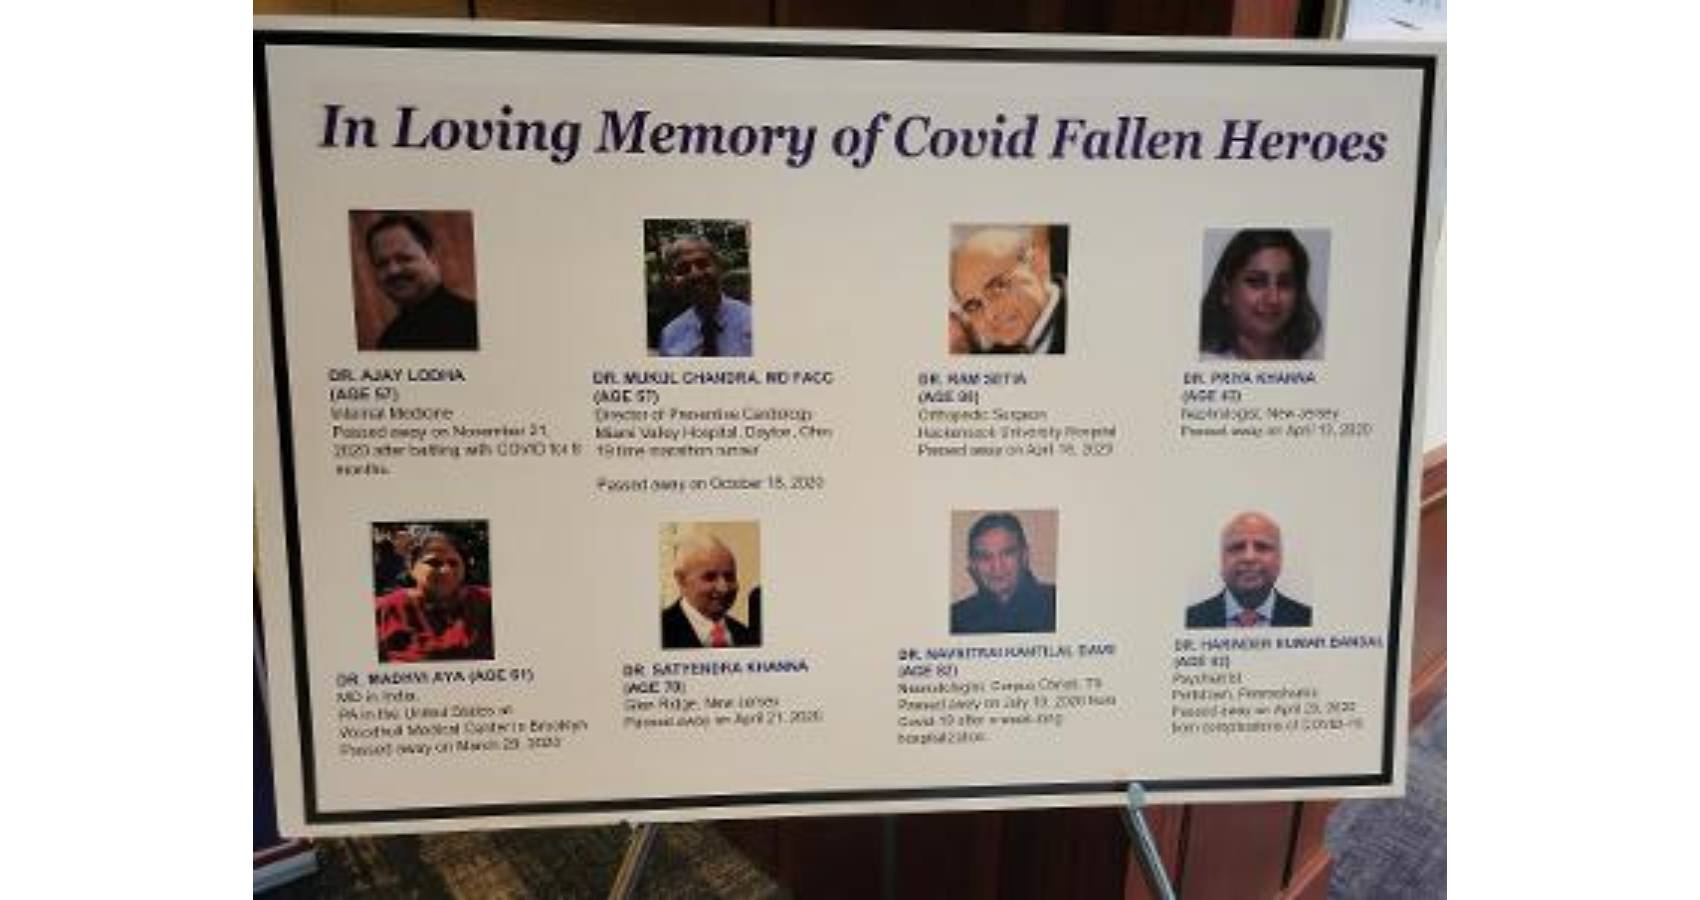 Paying Tributes To Covid Warriors, AAPI Holds 39th Annual Convention In Atlanta